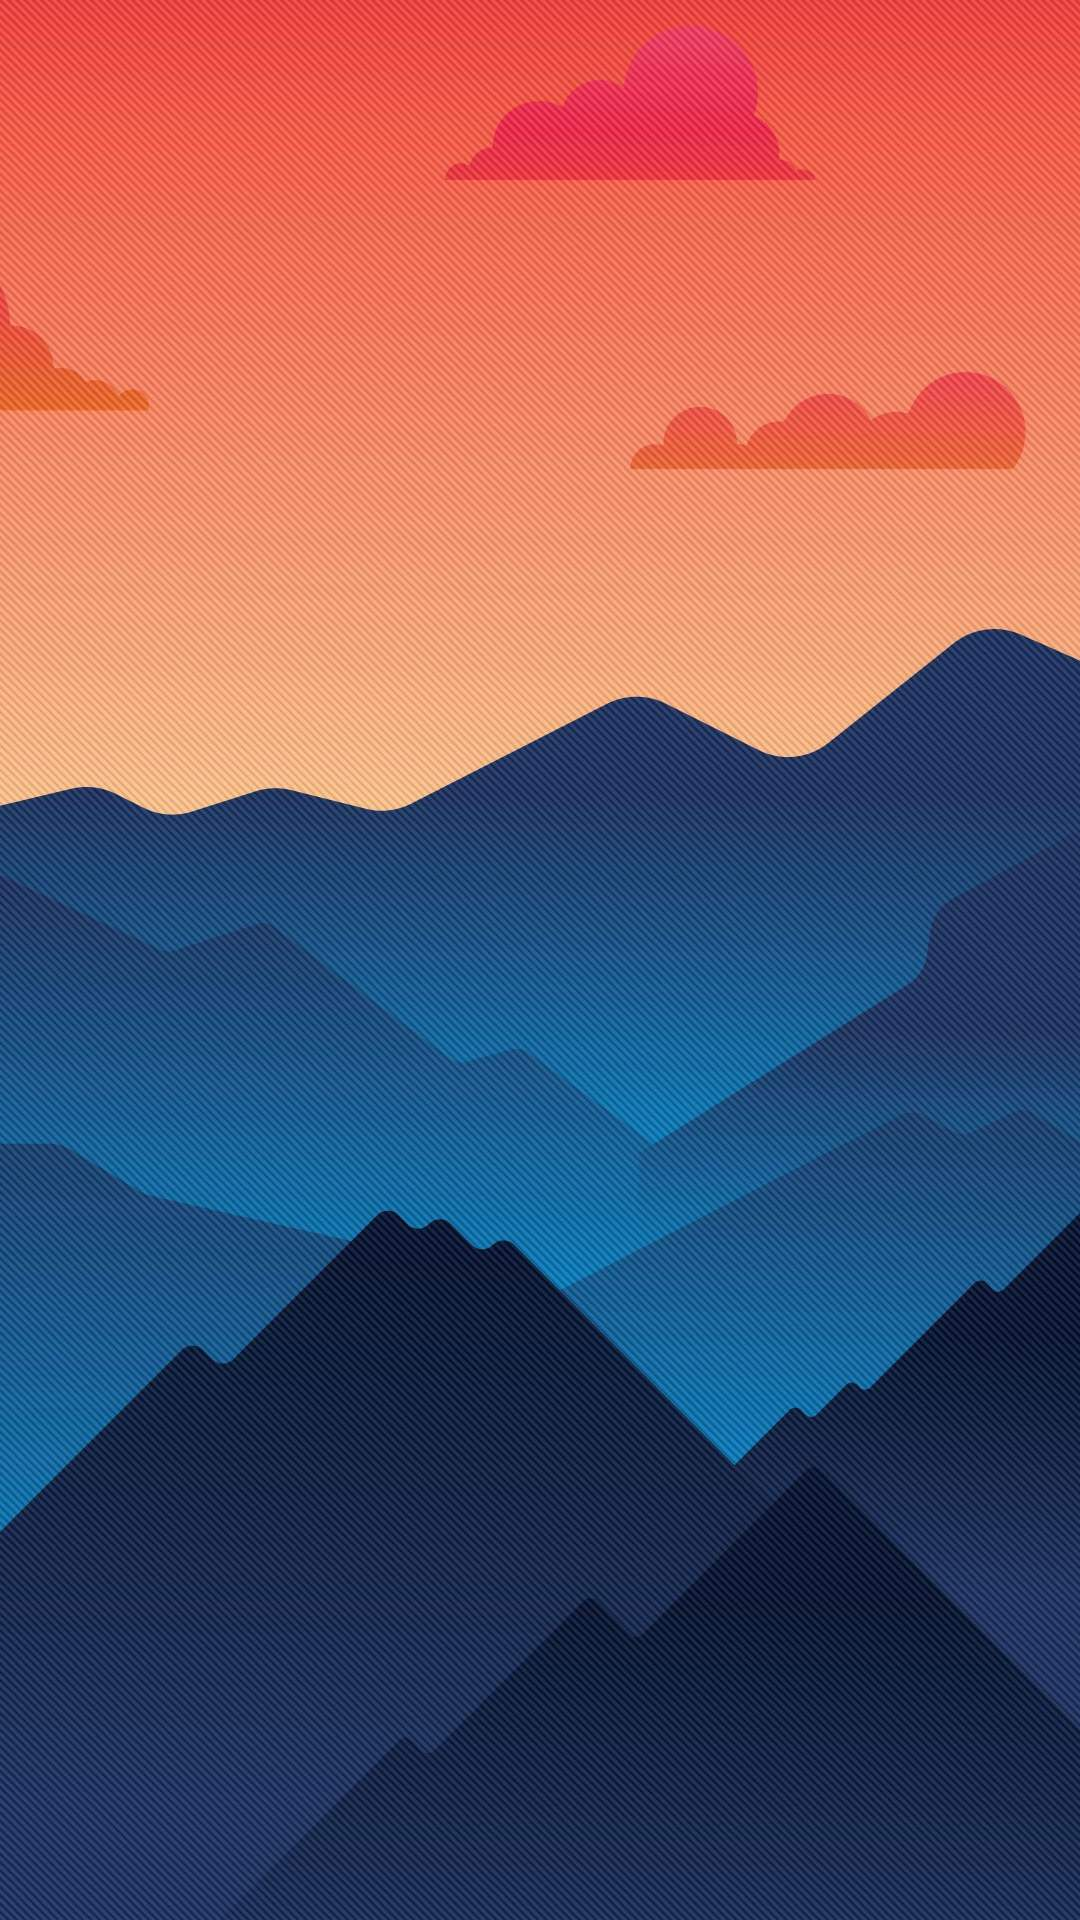 Abstract Hills iPhone Wallpaper